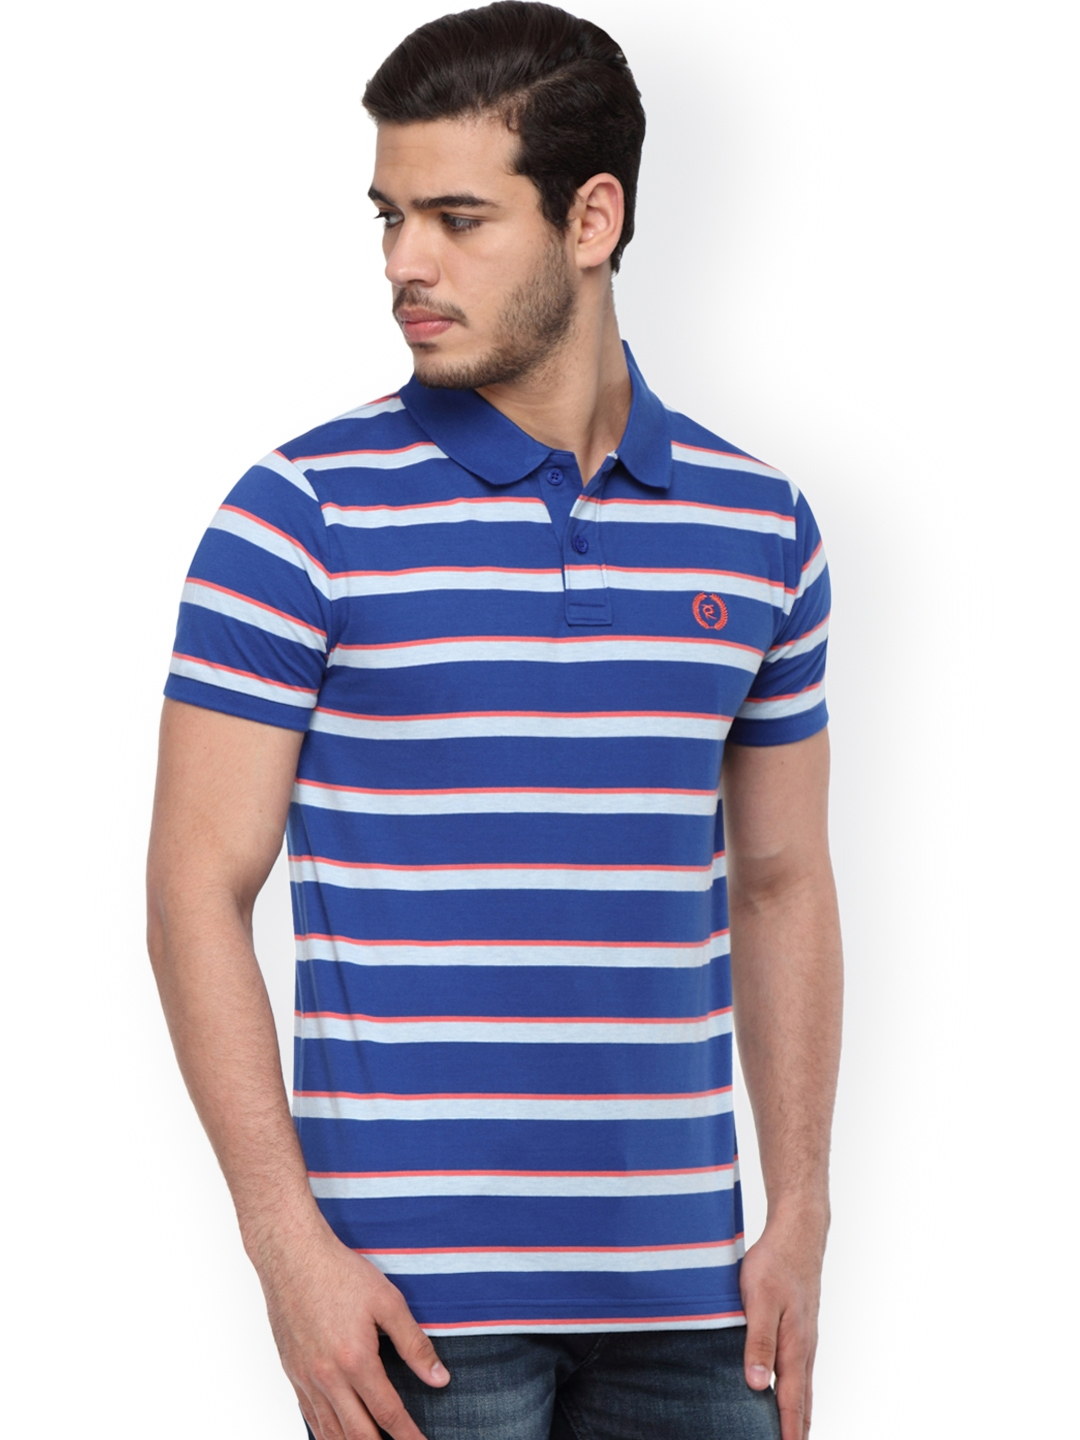 86d10982 Buy Classic Polo Men Blue Striped Polo T Shirt - Tshirts for Men ...